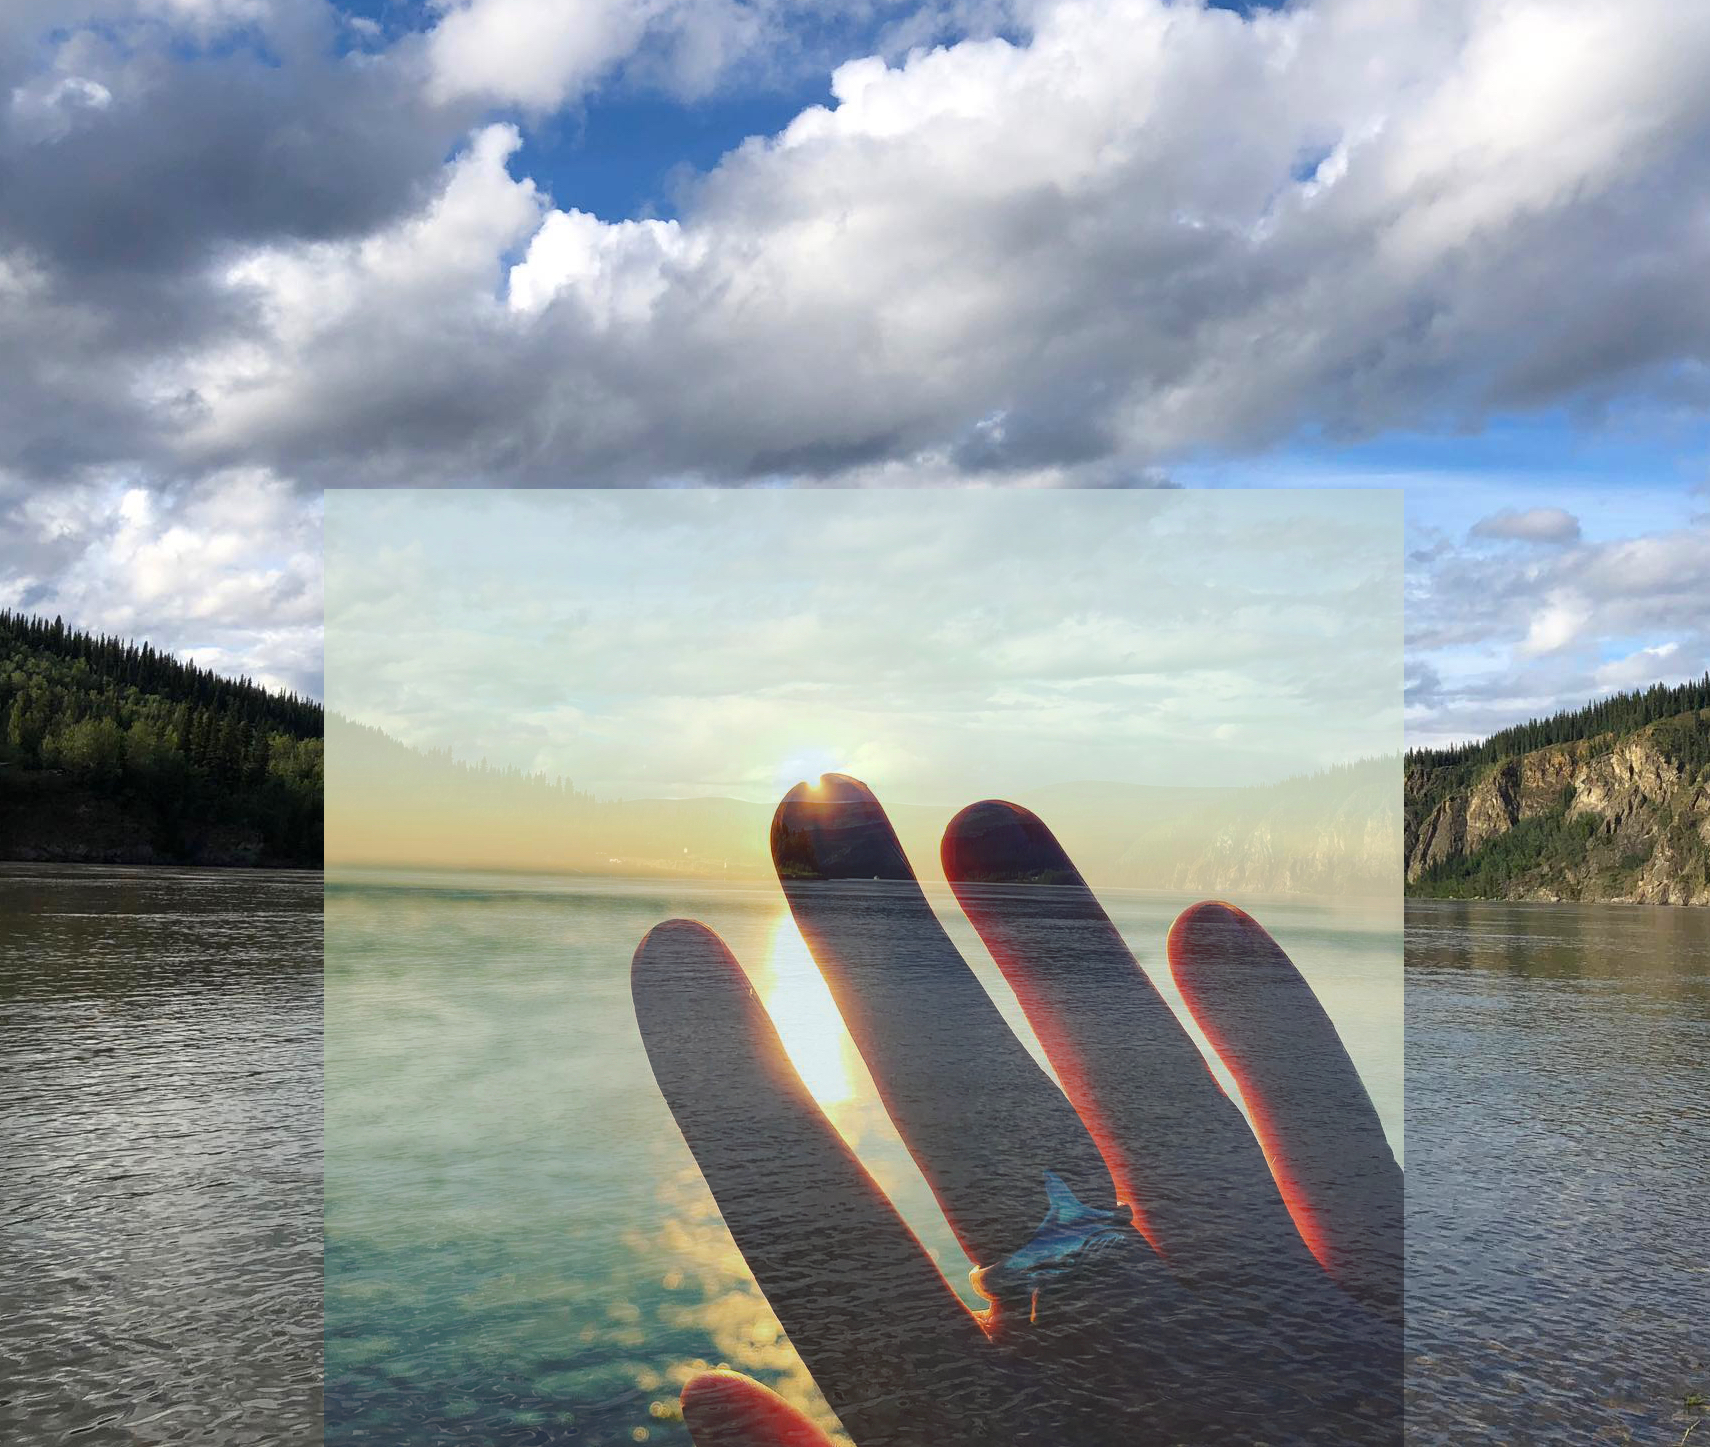 Lindsay Dobbin and Matthew Morgan,  Receive Transmit (Bay of Fundy and Yukon River),  Bay of Fundy photo by Lindsay Dobbin, Yukon River photo by Matthew Morgan, 2018.